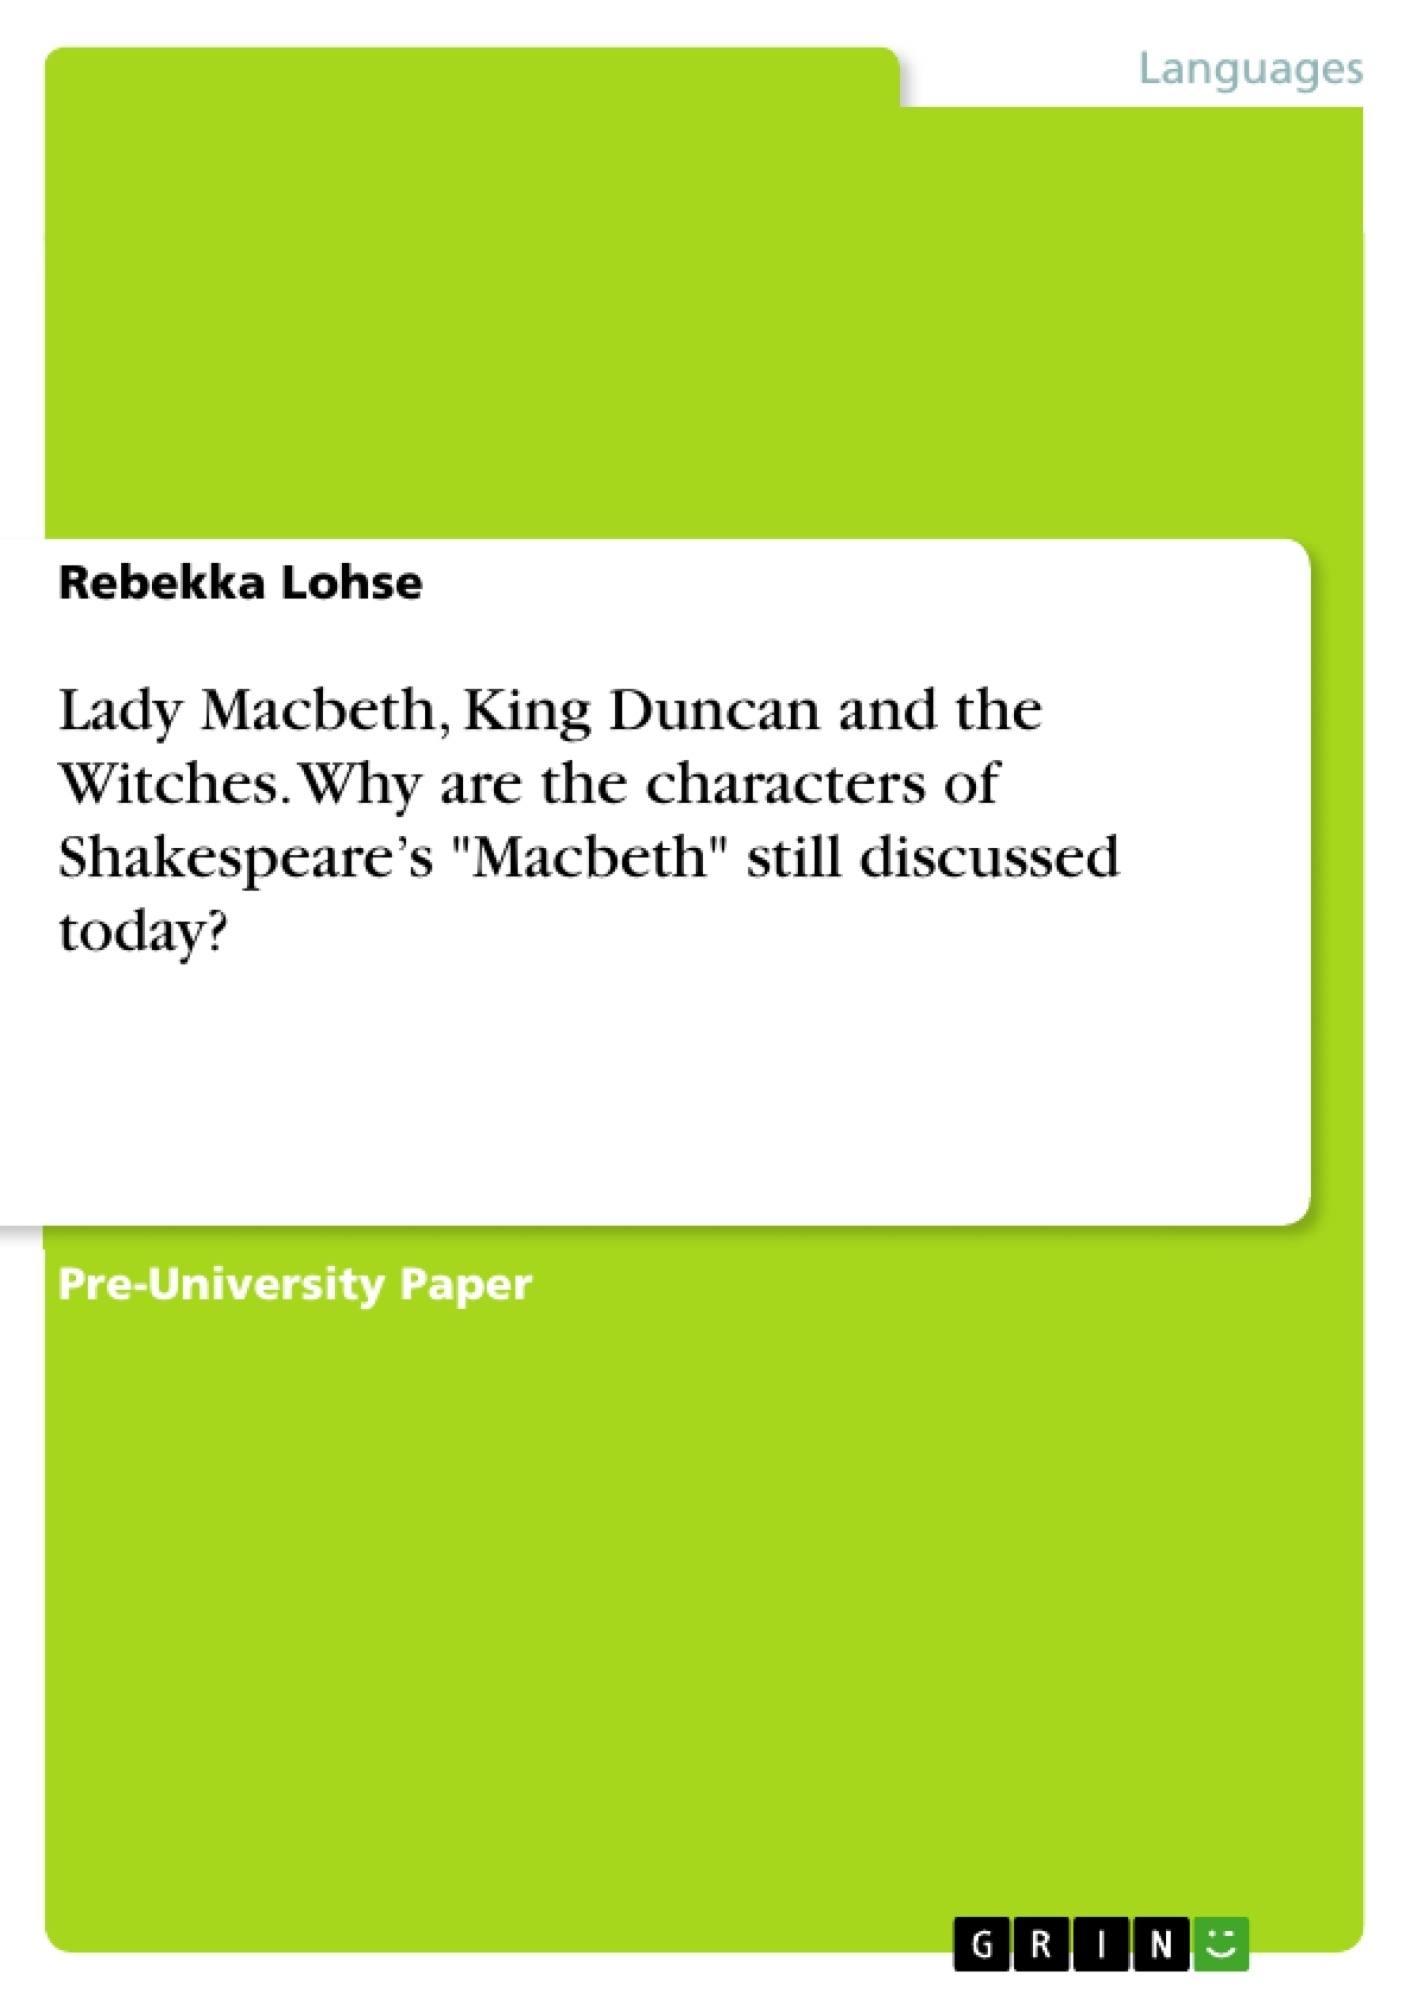 """Title: Lady Macbeth, King Duncan and the Witches. Why are the characters of Shakespeare's """"Macbeth"""" still discussed today?"""